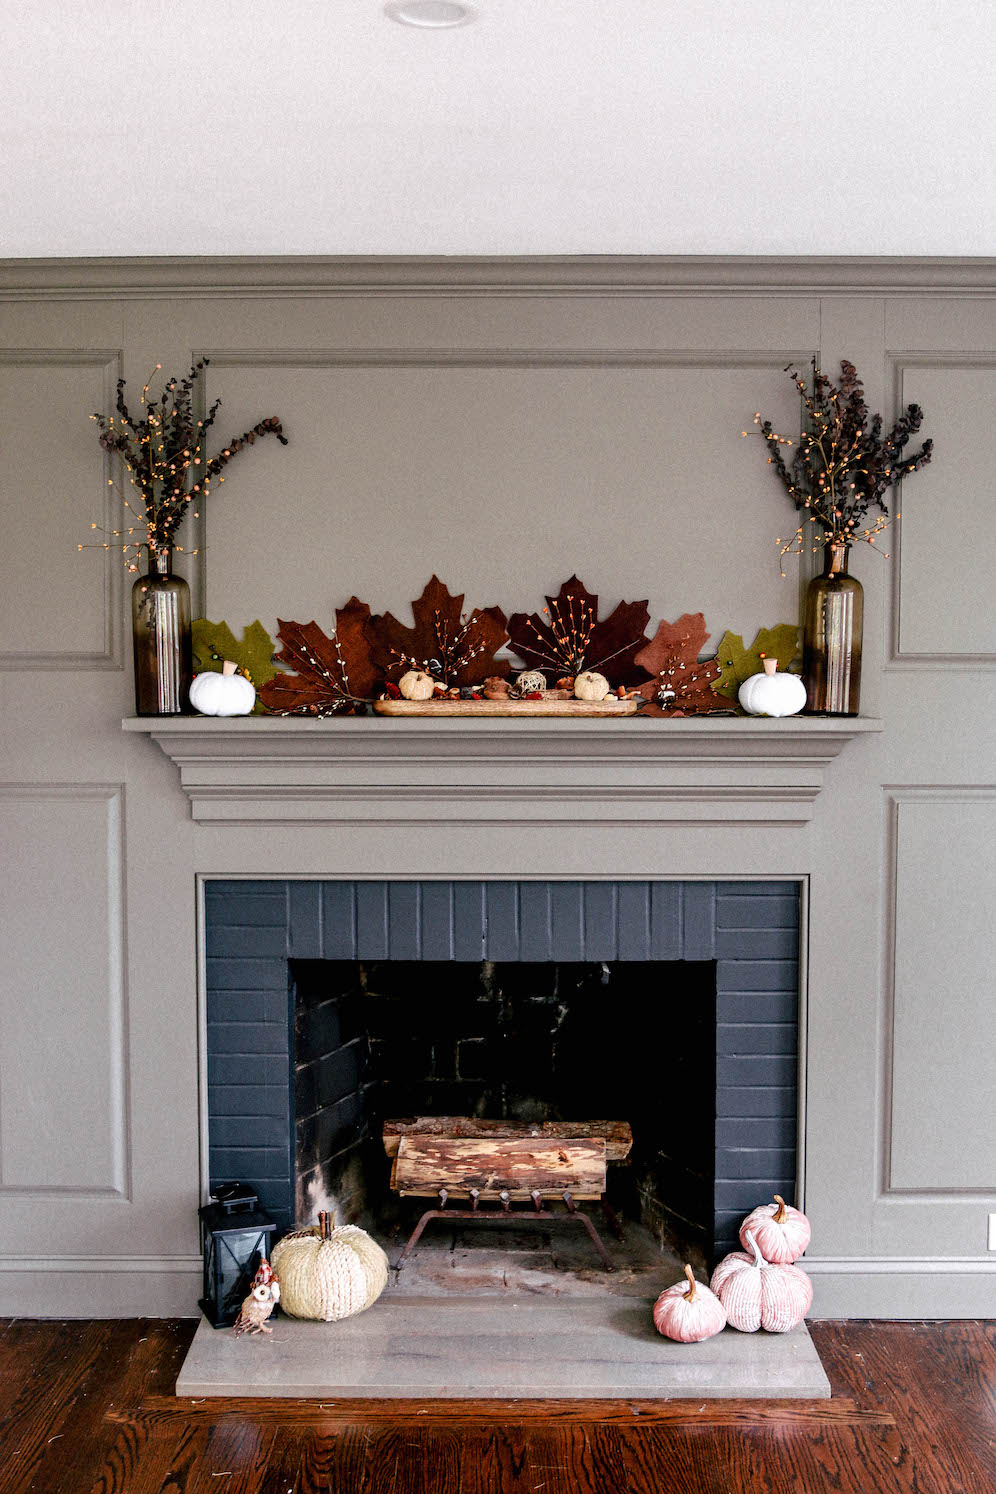 decorate your mantel for autumn